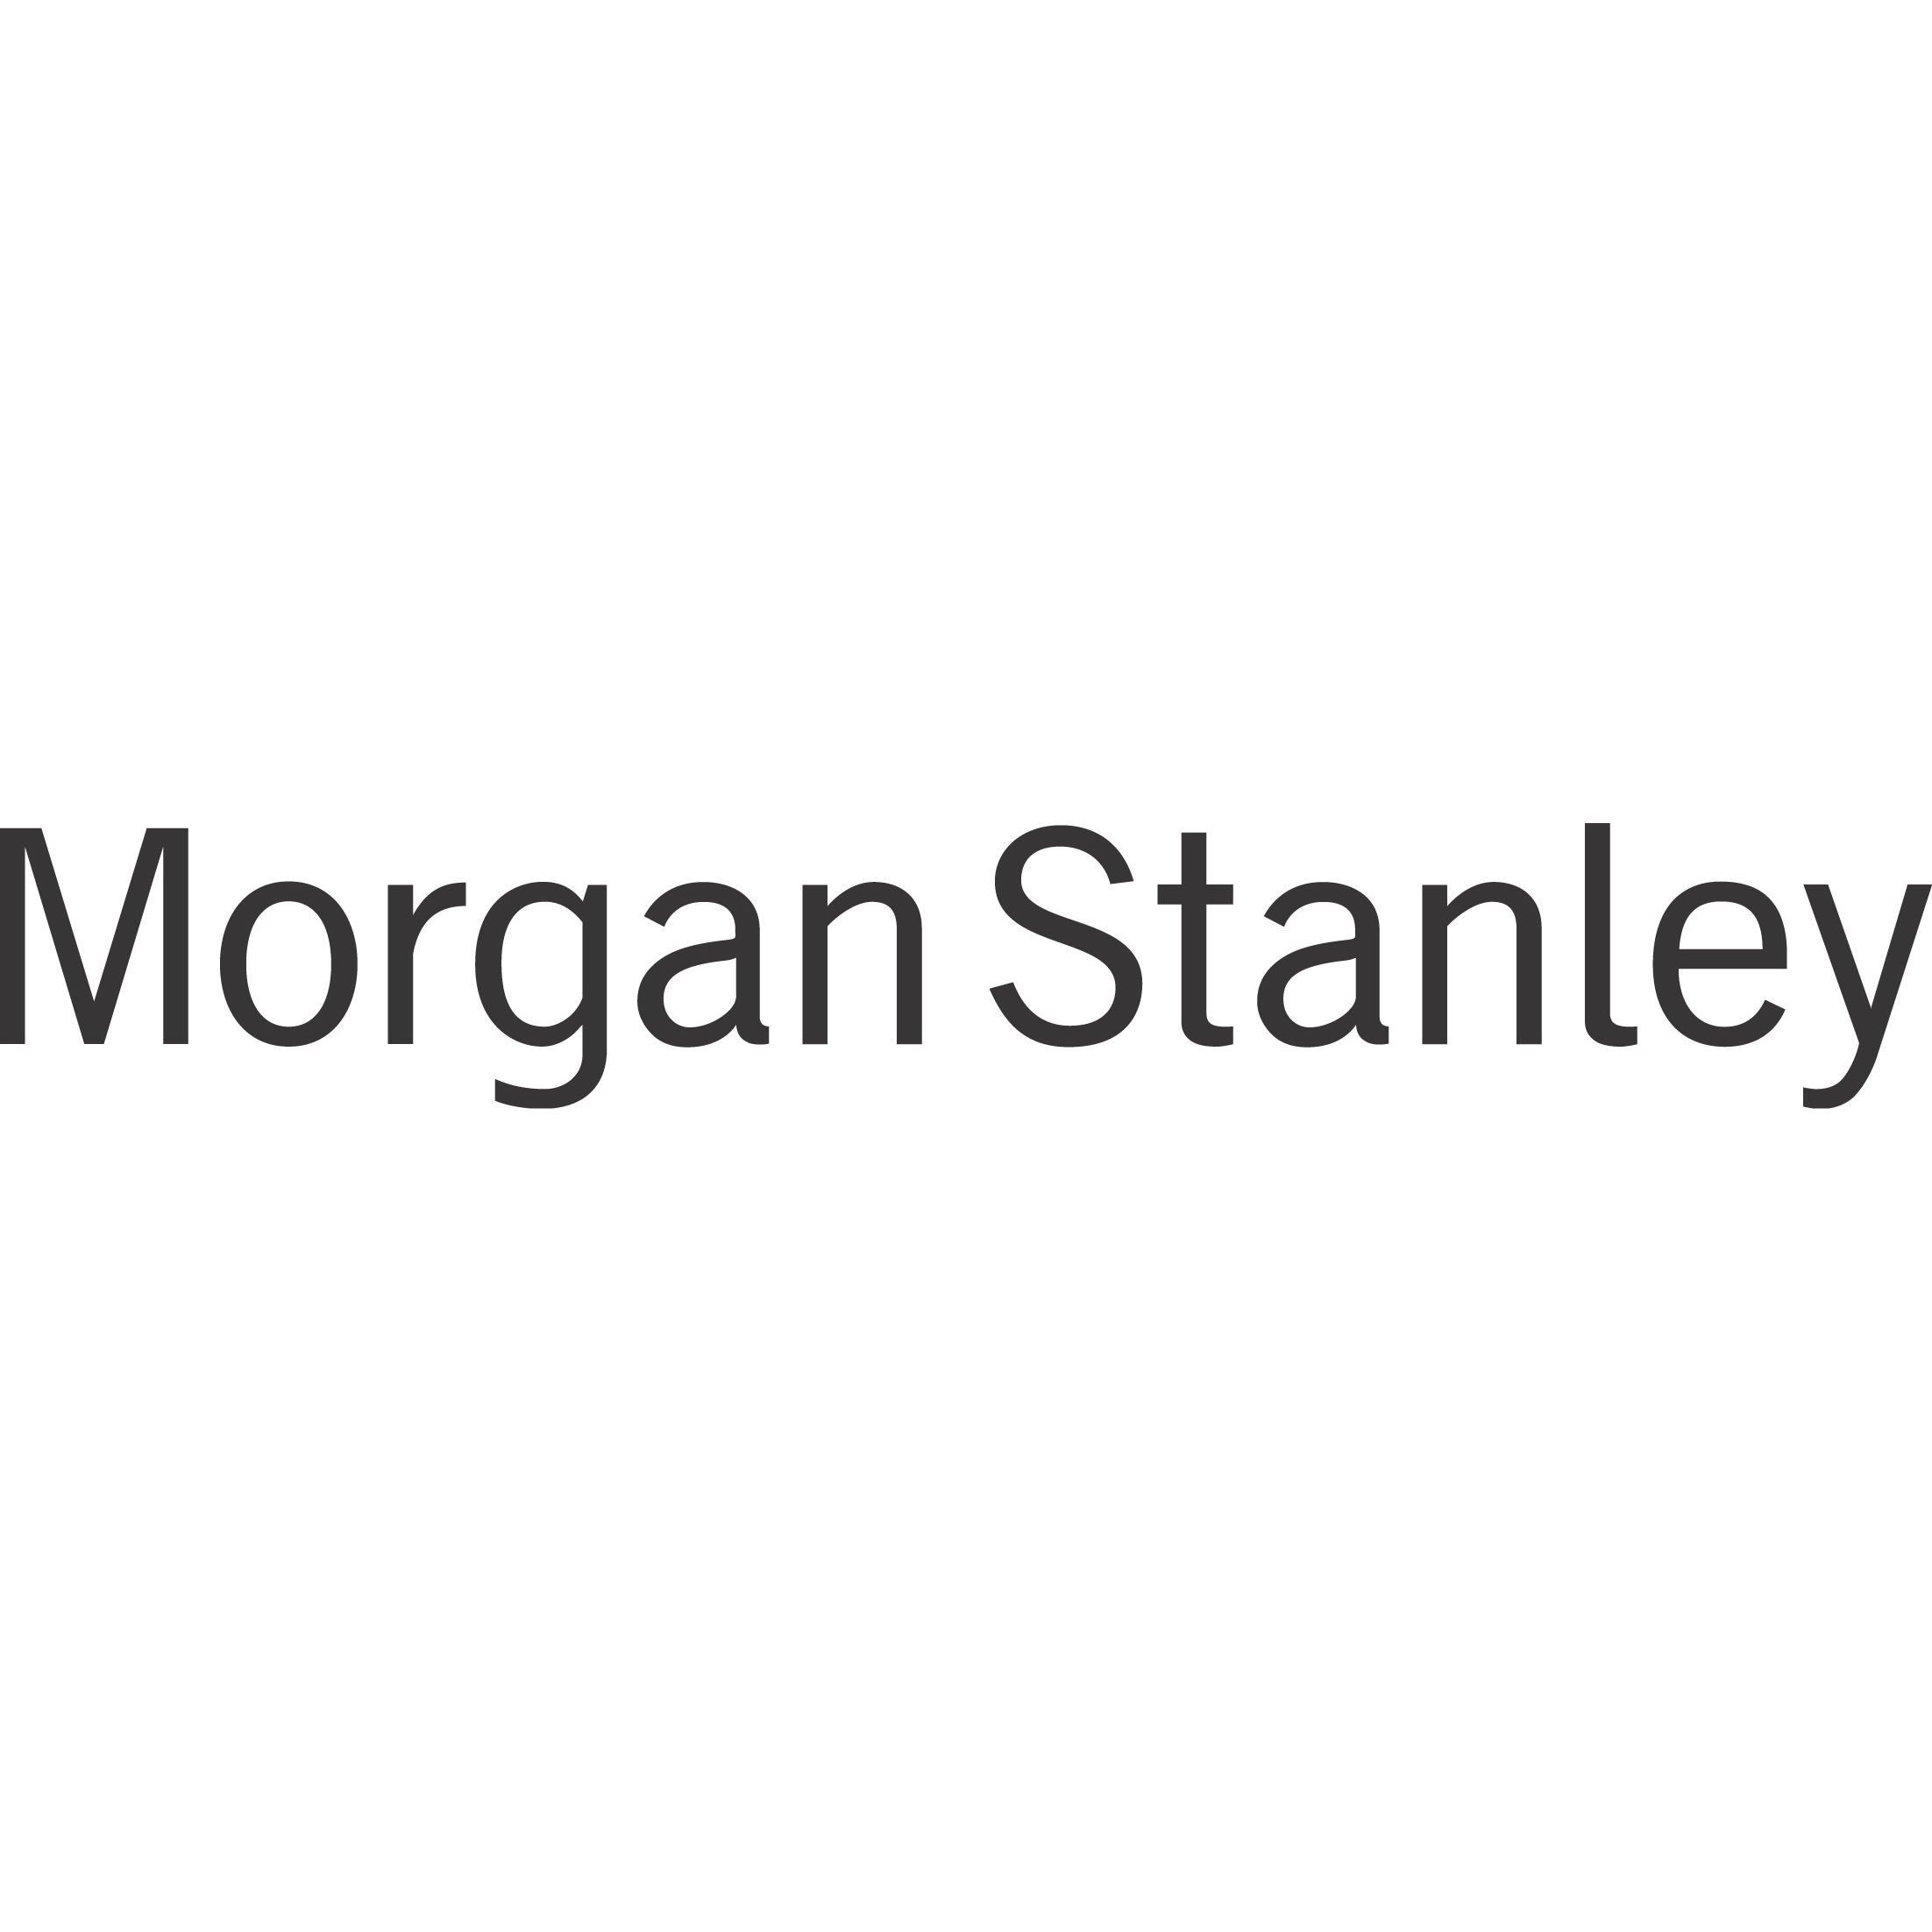 Brad Weinman - Morgan Stanley | Financial Advisor in West Palm Beach,Florida